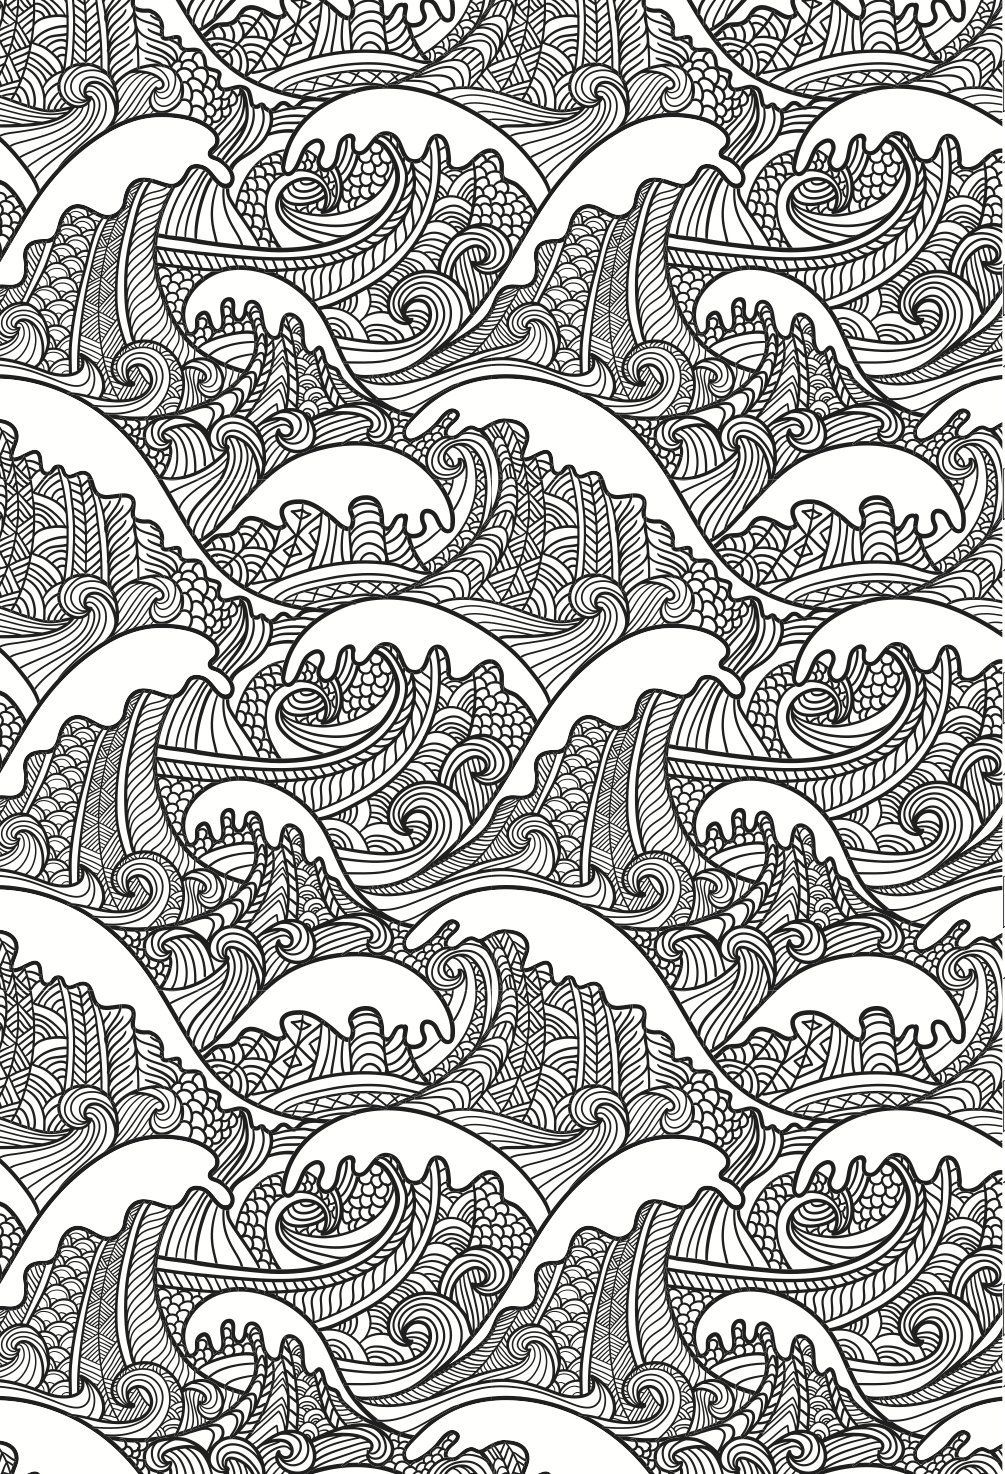 Beautiful Waves Colouring Page In An Artistic Japanese Style Grown Up